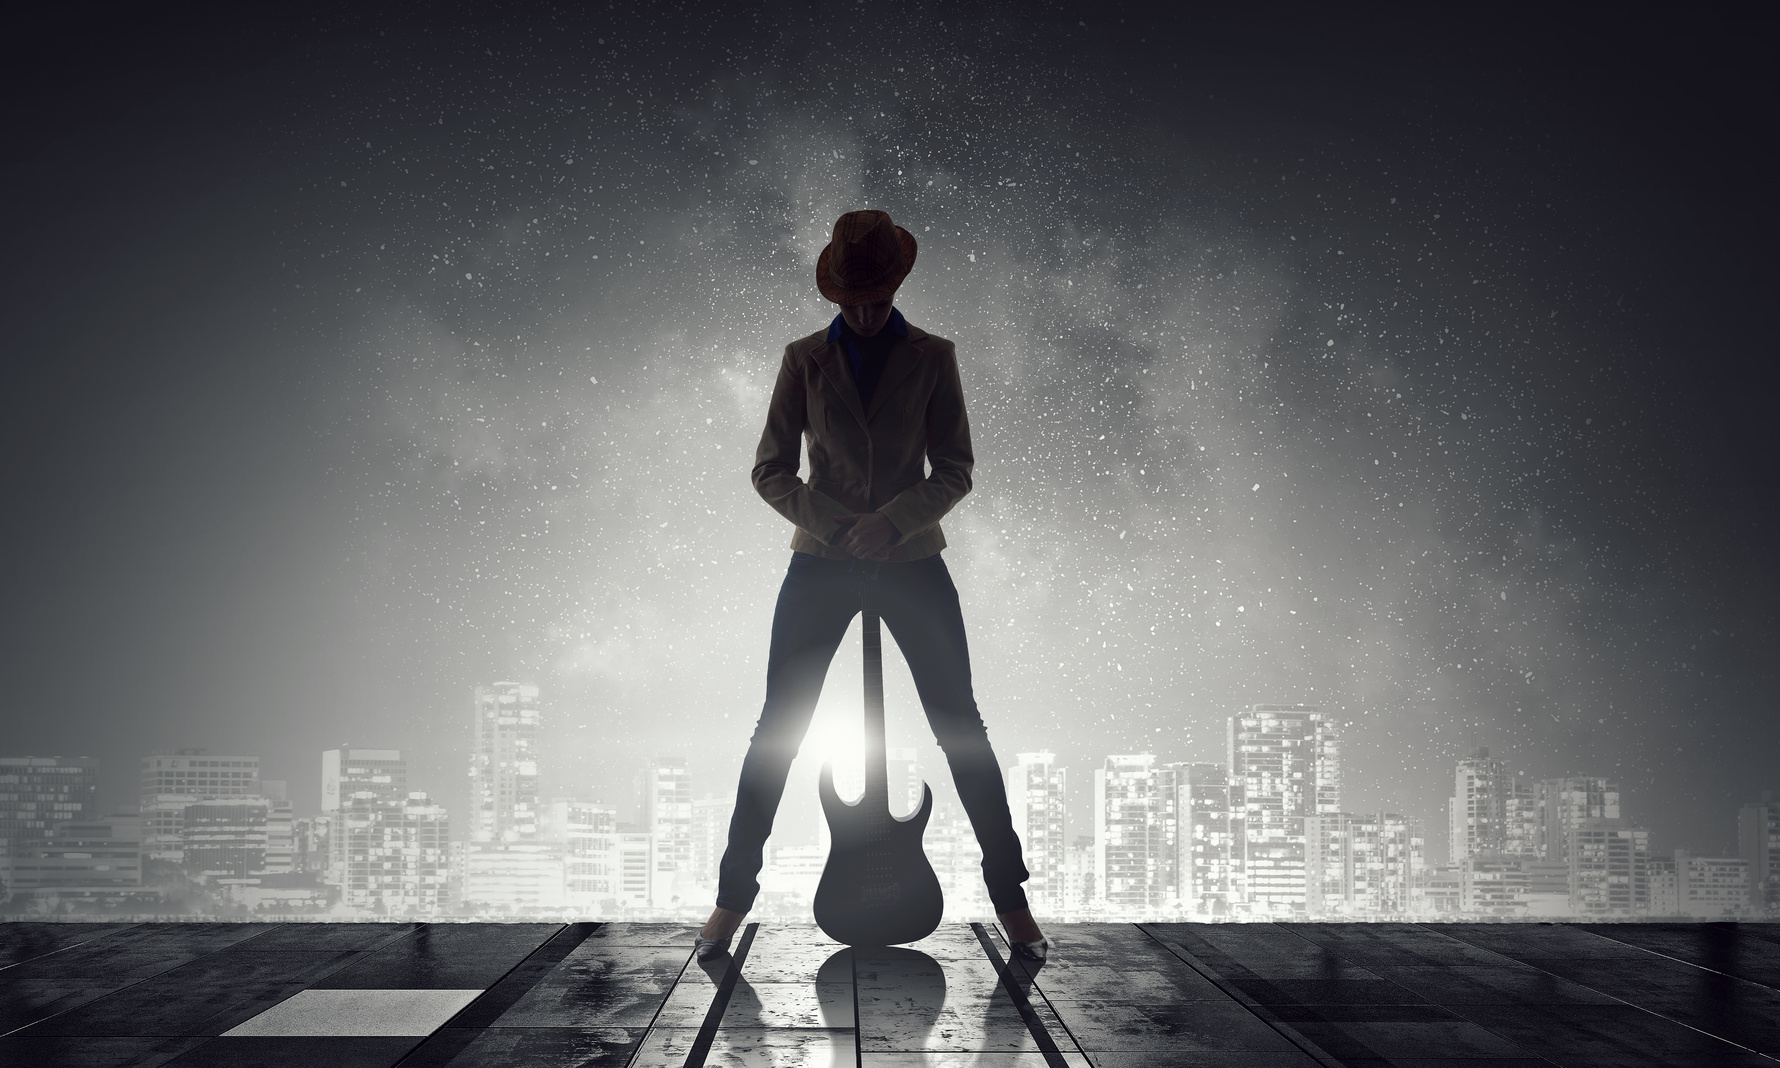 Silhouette of woman with guitar against night city background